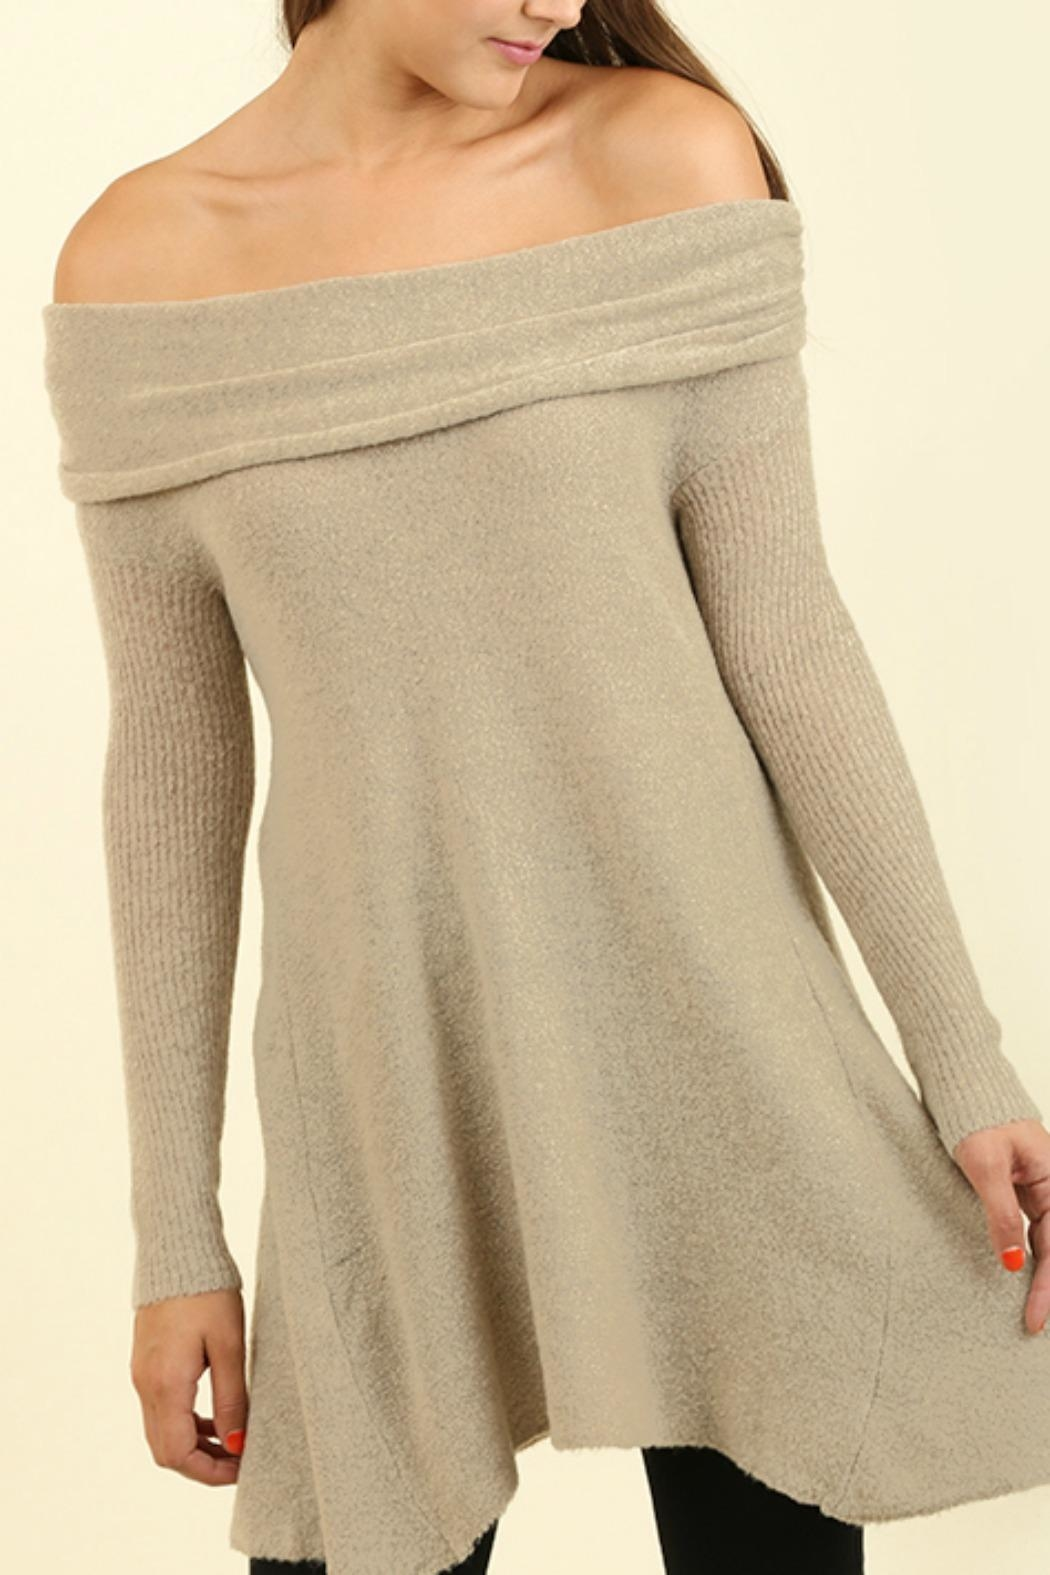 Umgee USA Off the Shoulder Sweater - Main Image